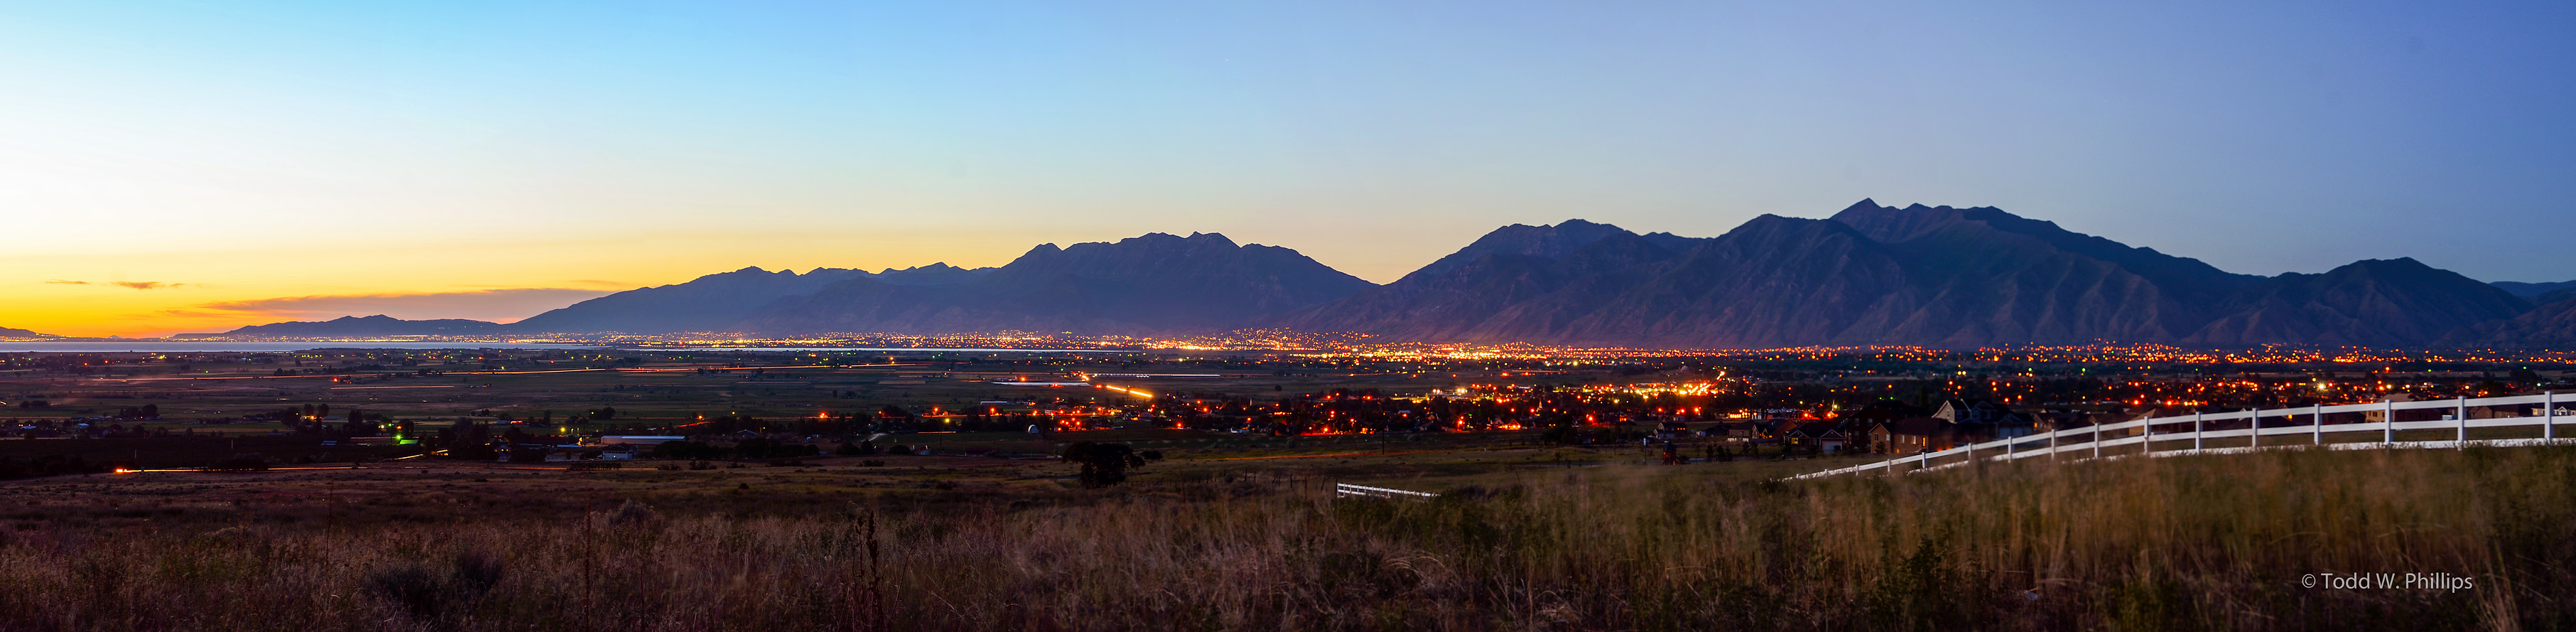 Provo Mountains at Sunset